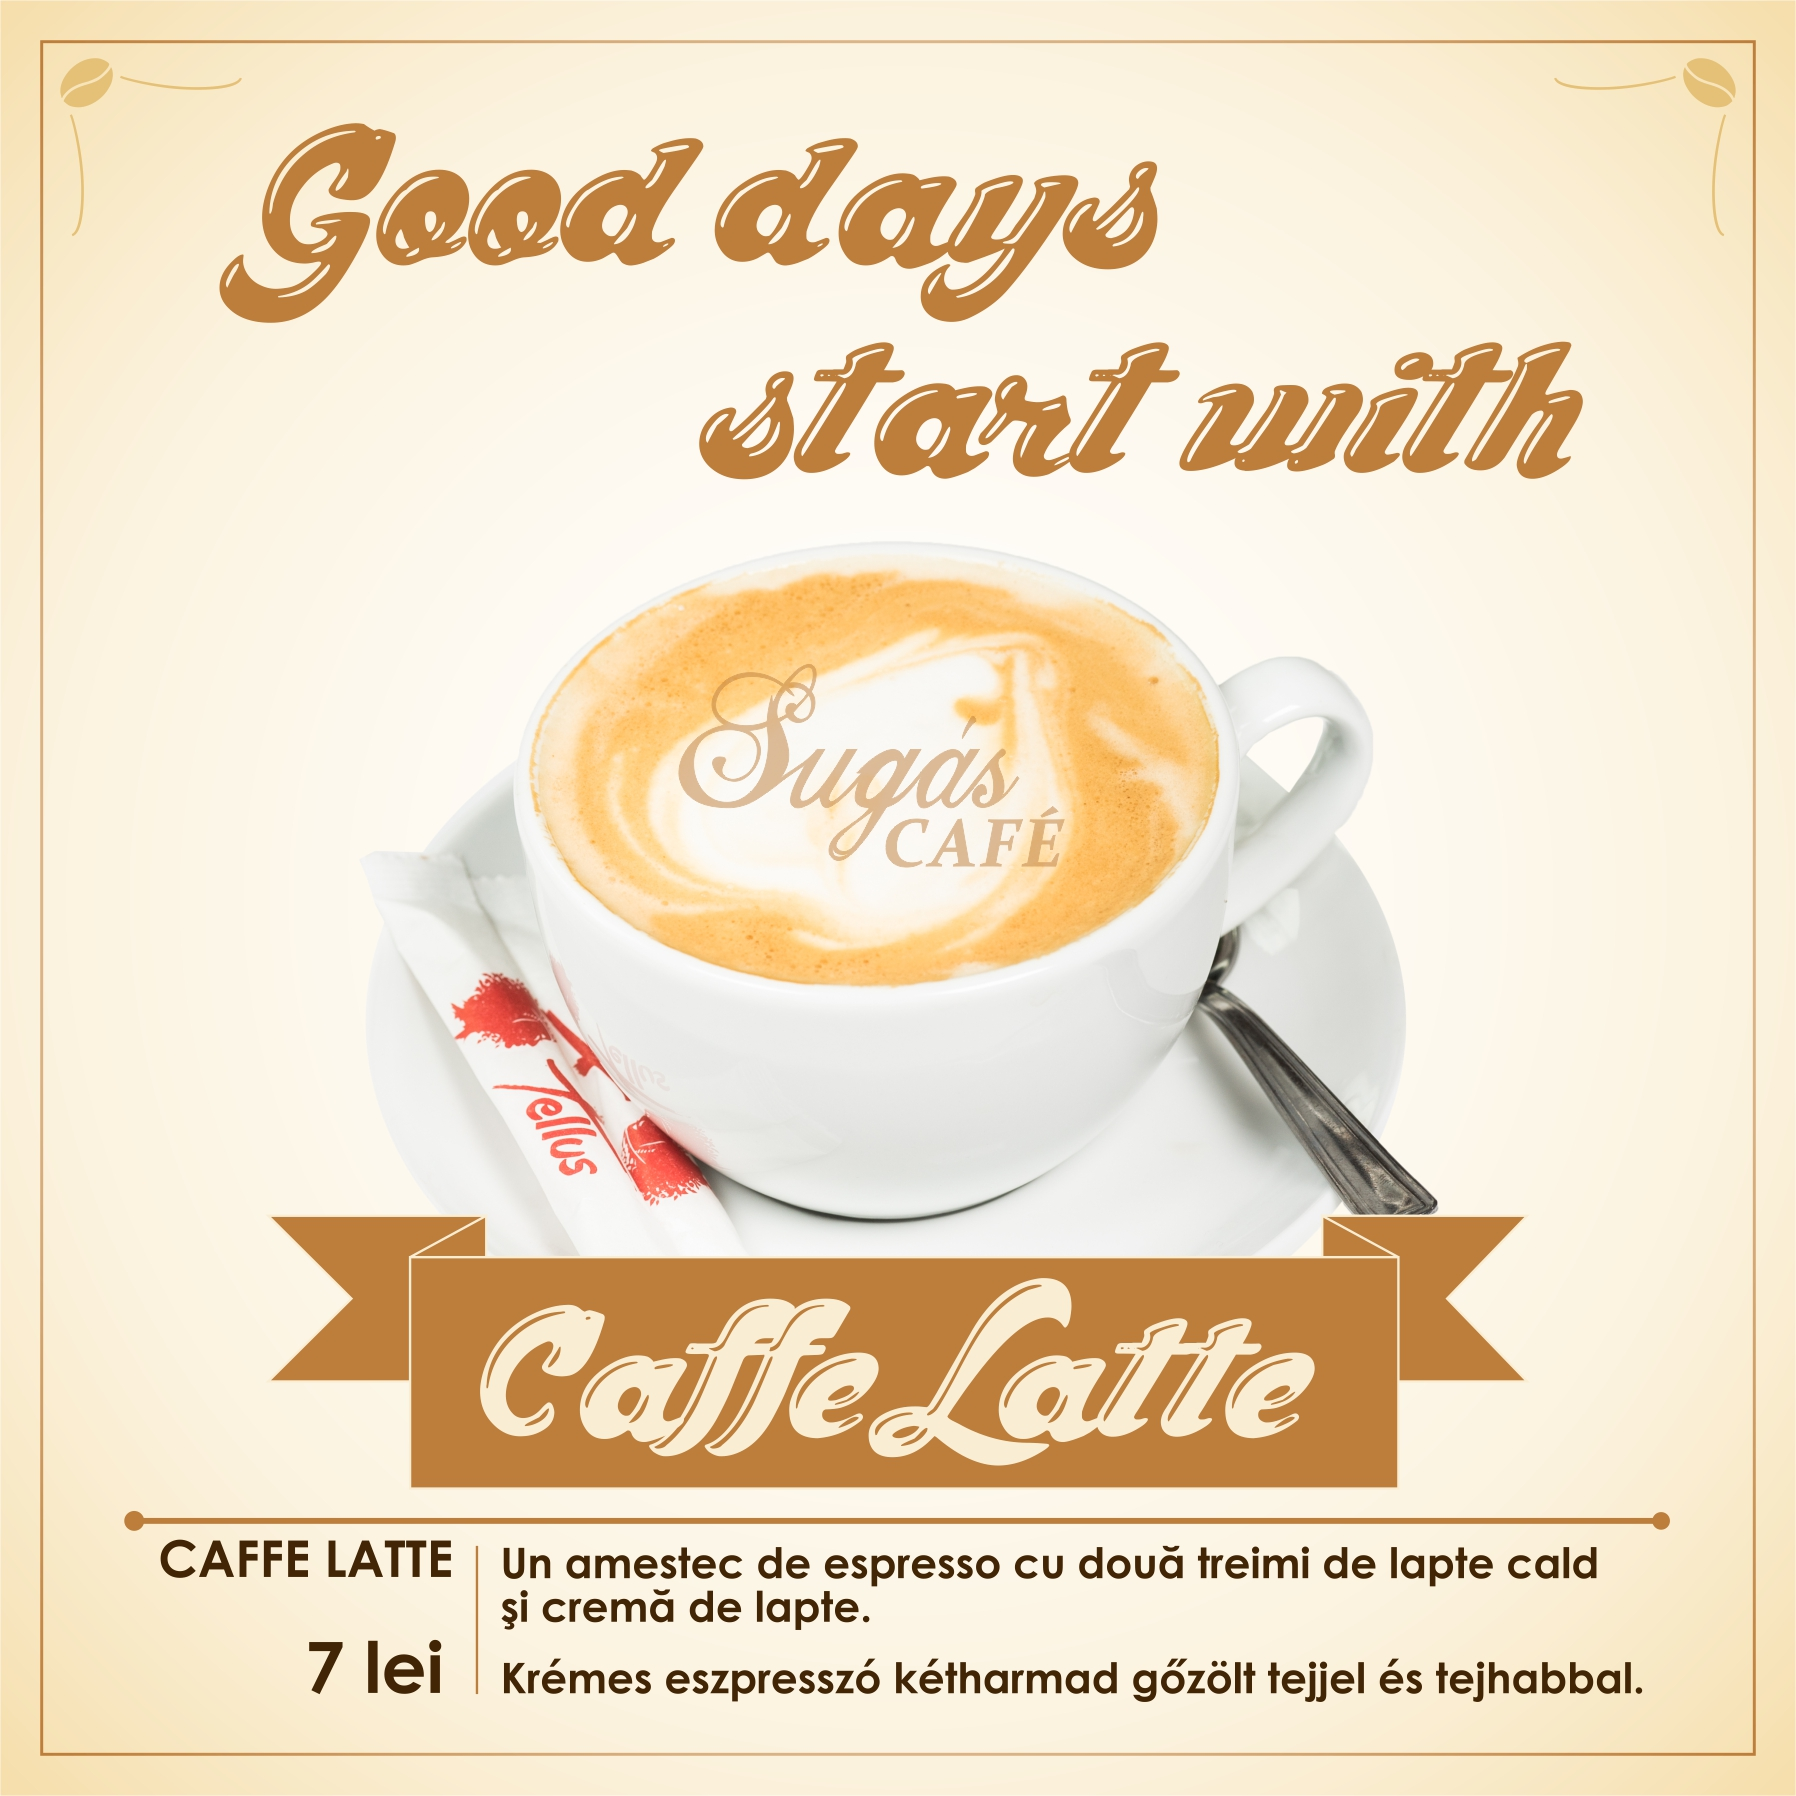 Sugas Cafe menu CAFFE LATTE